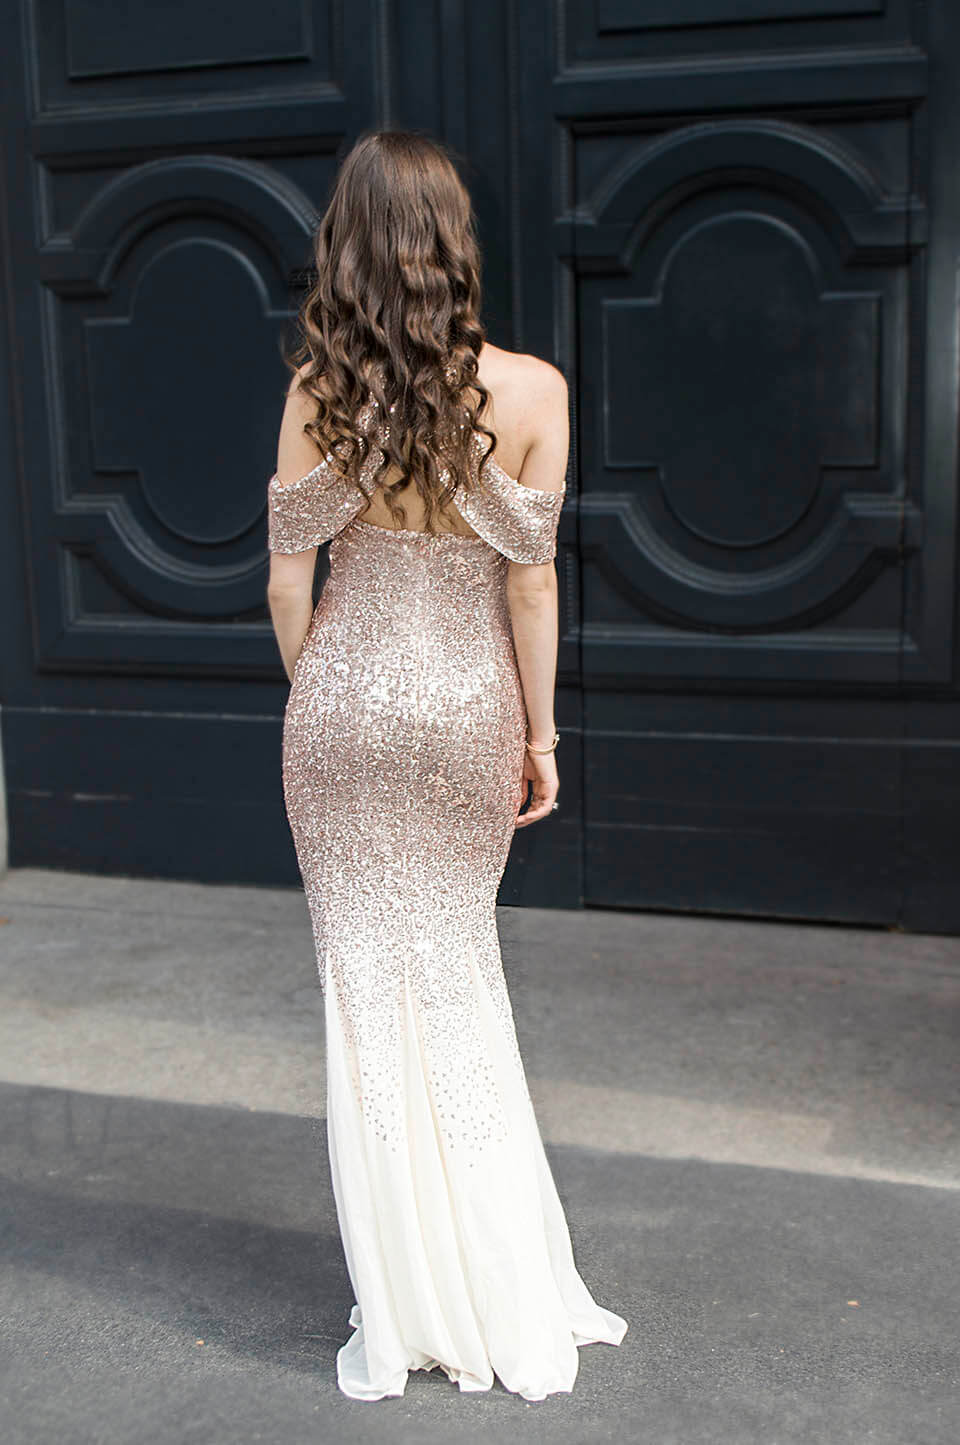 Party dress: back